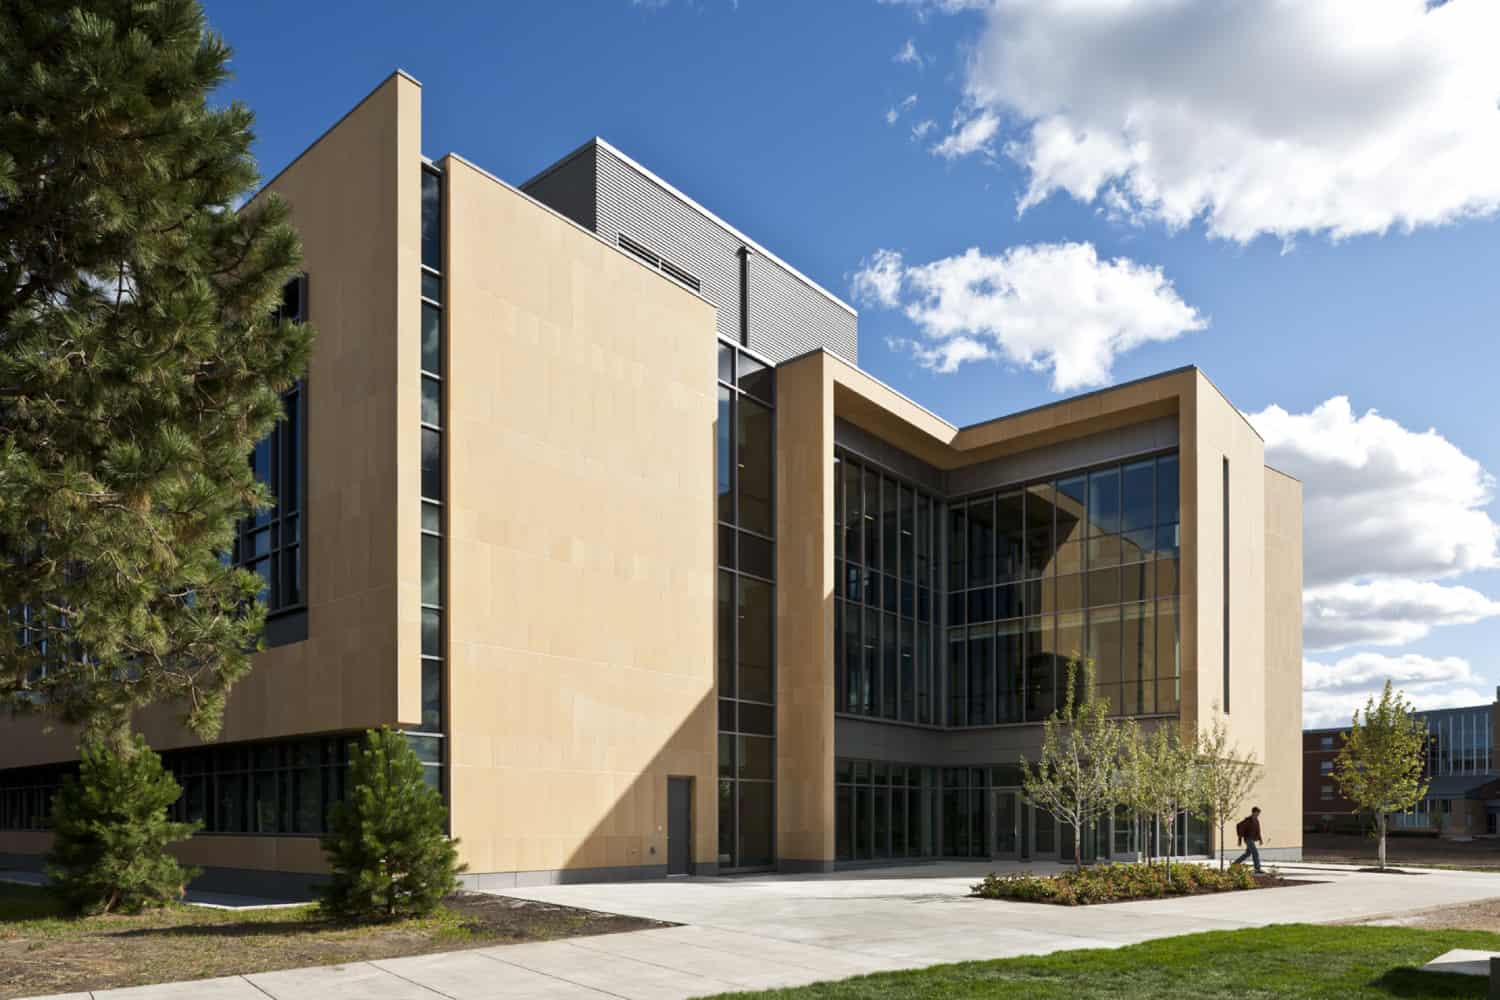 GUSTAVUS ADOLPHUS COLLEGE WARREN AND DONNA BECK ACADEMIC HALL